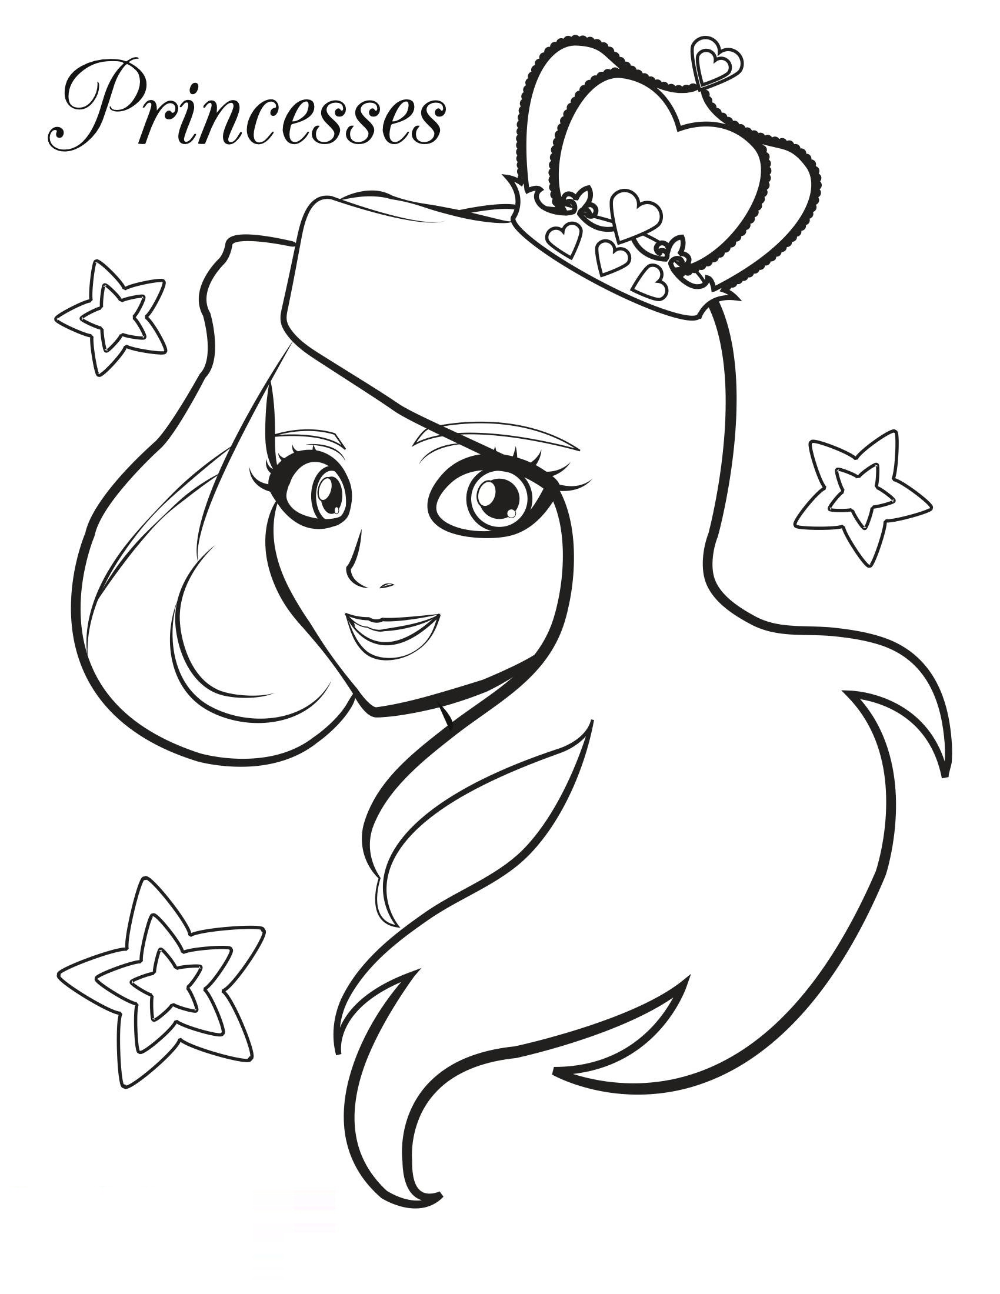 Printable Coloring Pages For Girls 2 Usable In 2020 Coloring Pages For Girls Printable Coloring Pages Coloring Sheets For Kids